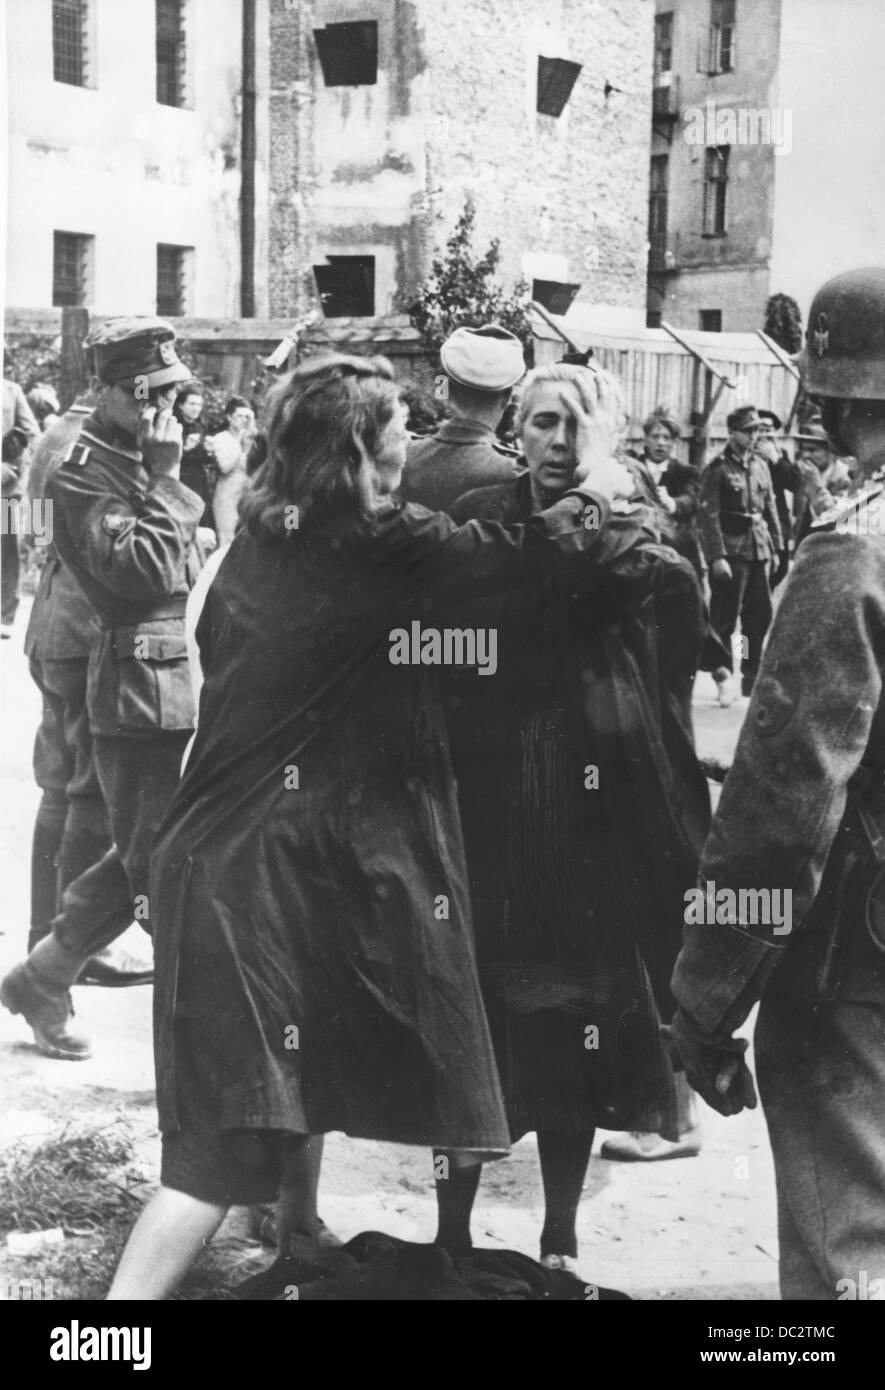 Following the German attack on the Soviet Union on 22 June 1941, the NKVD  / GPU (Soviet secret police) commited - Stock Image